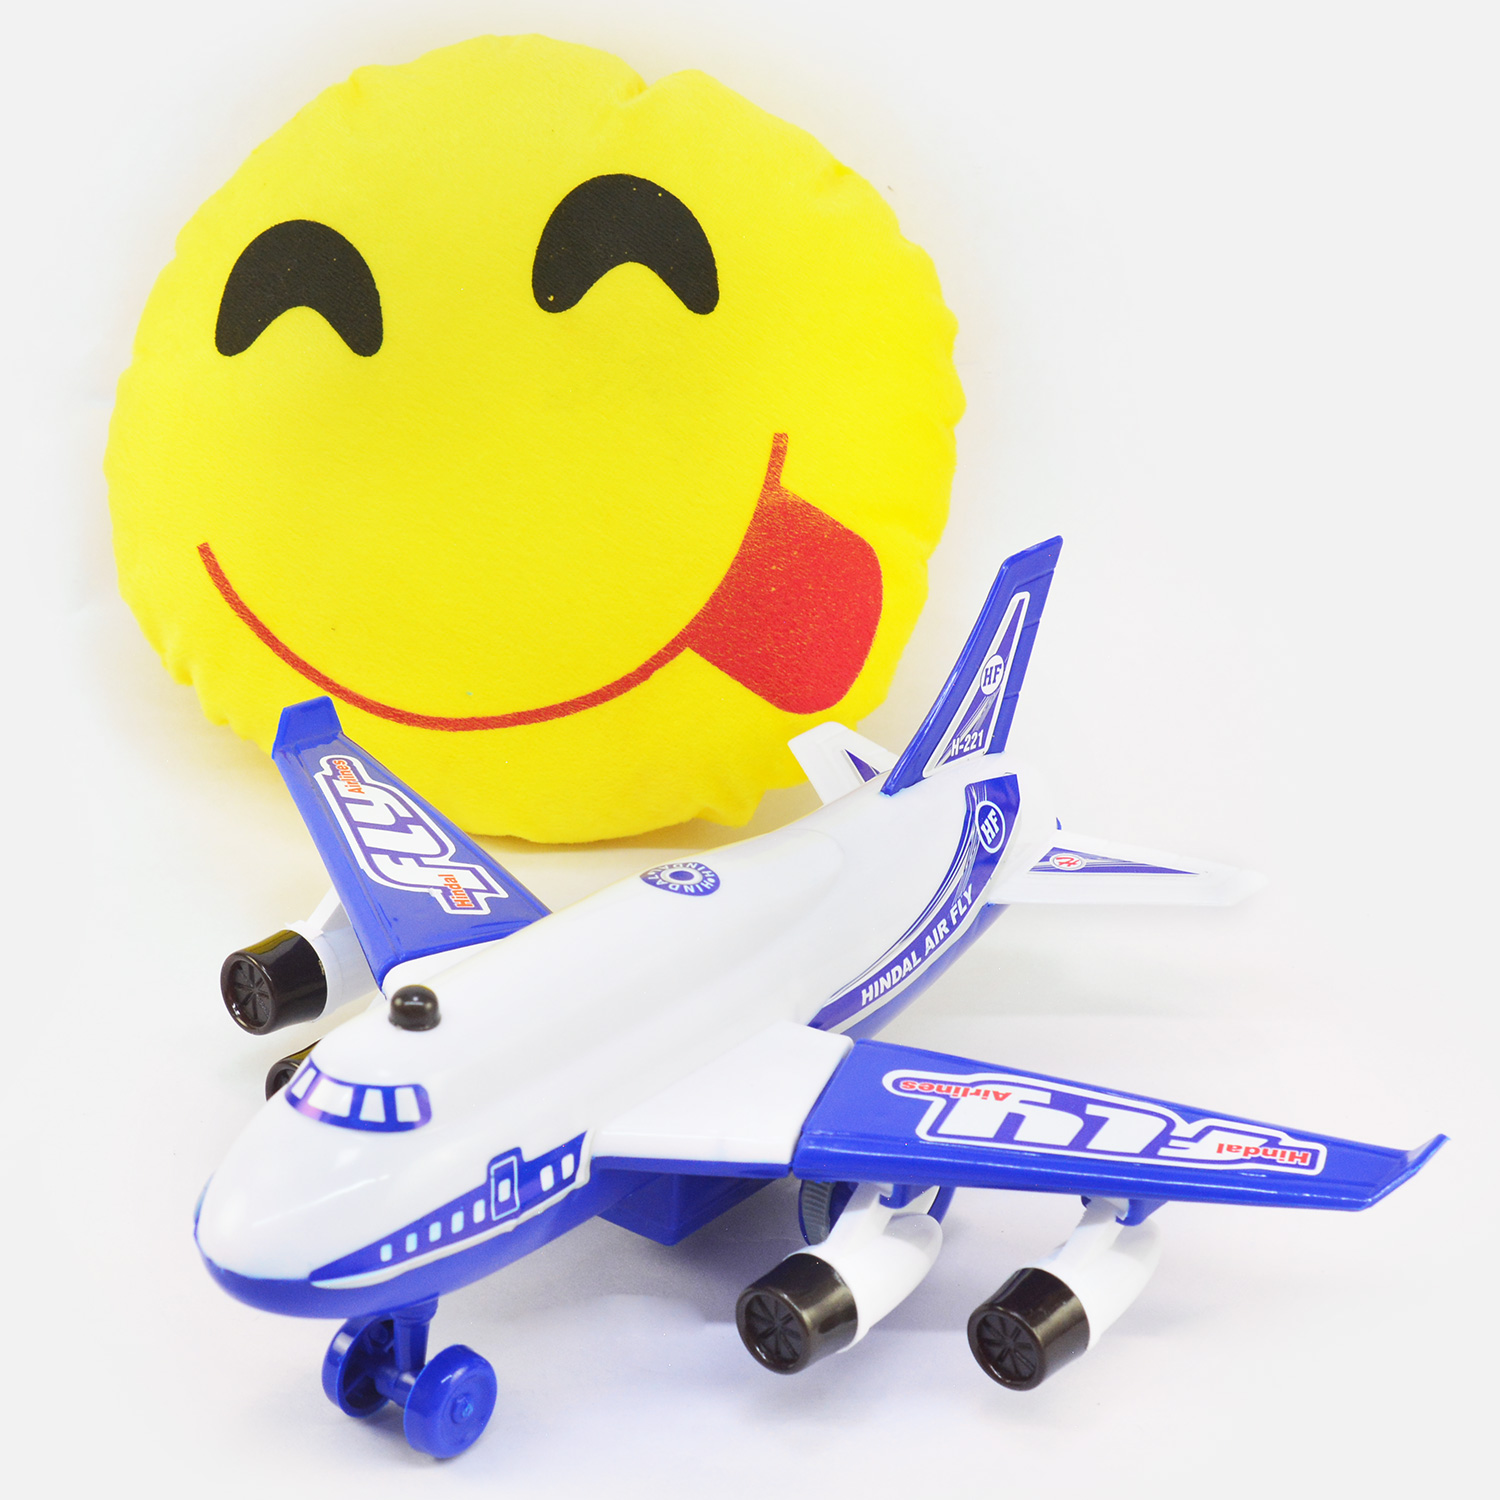 Eye Catching Kids  Airplane with Face Savoring Food Soft Toy